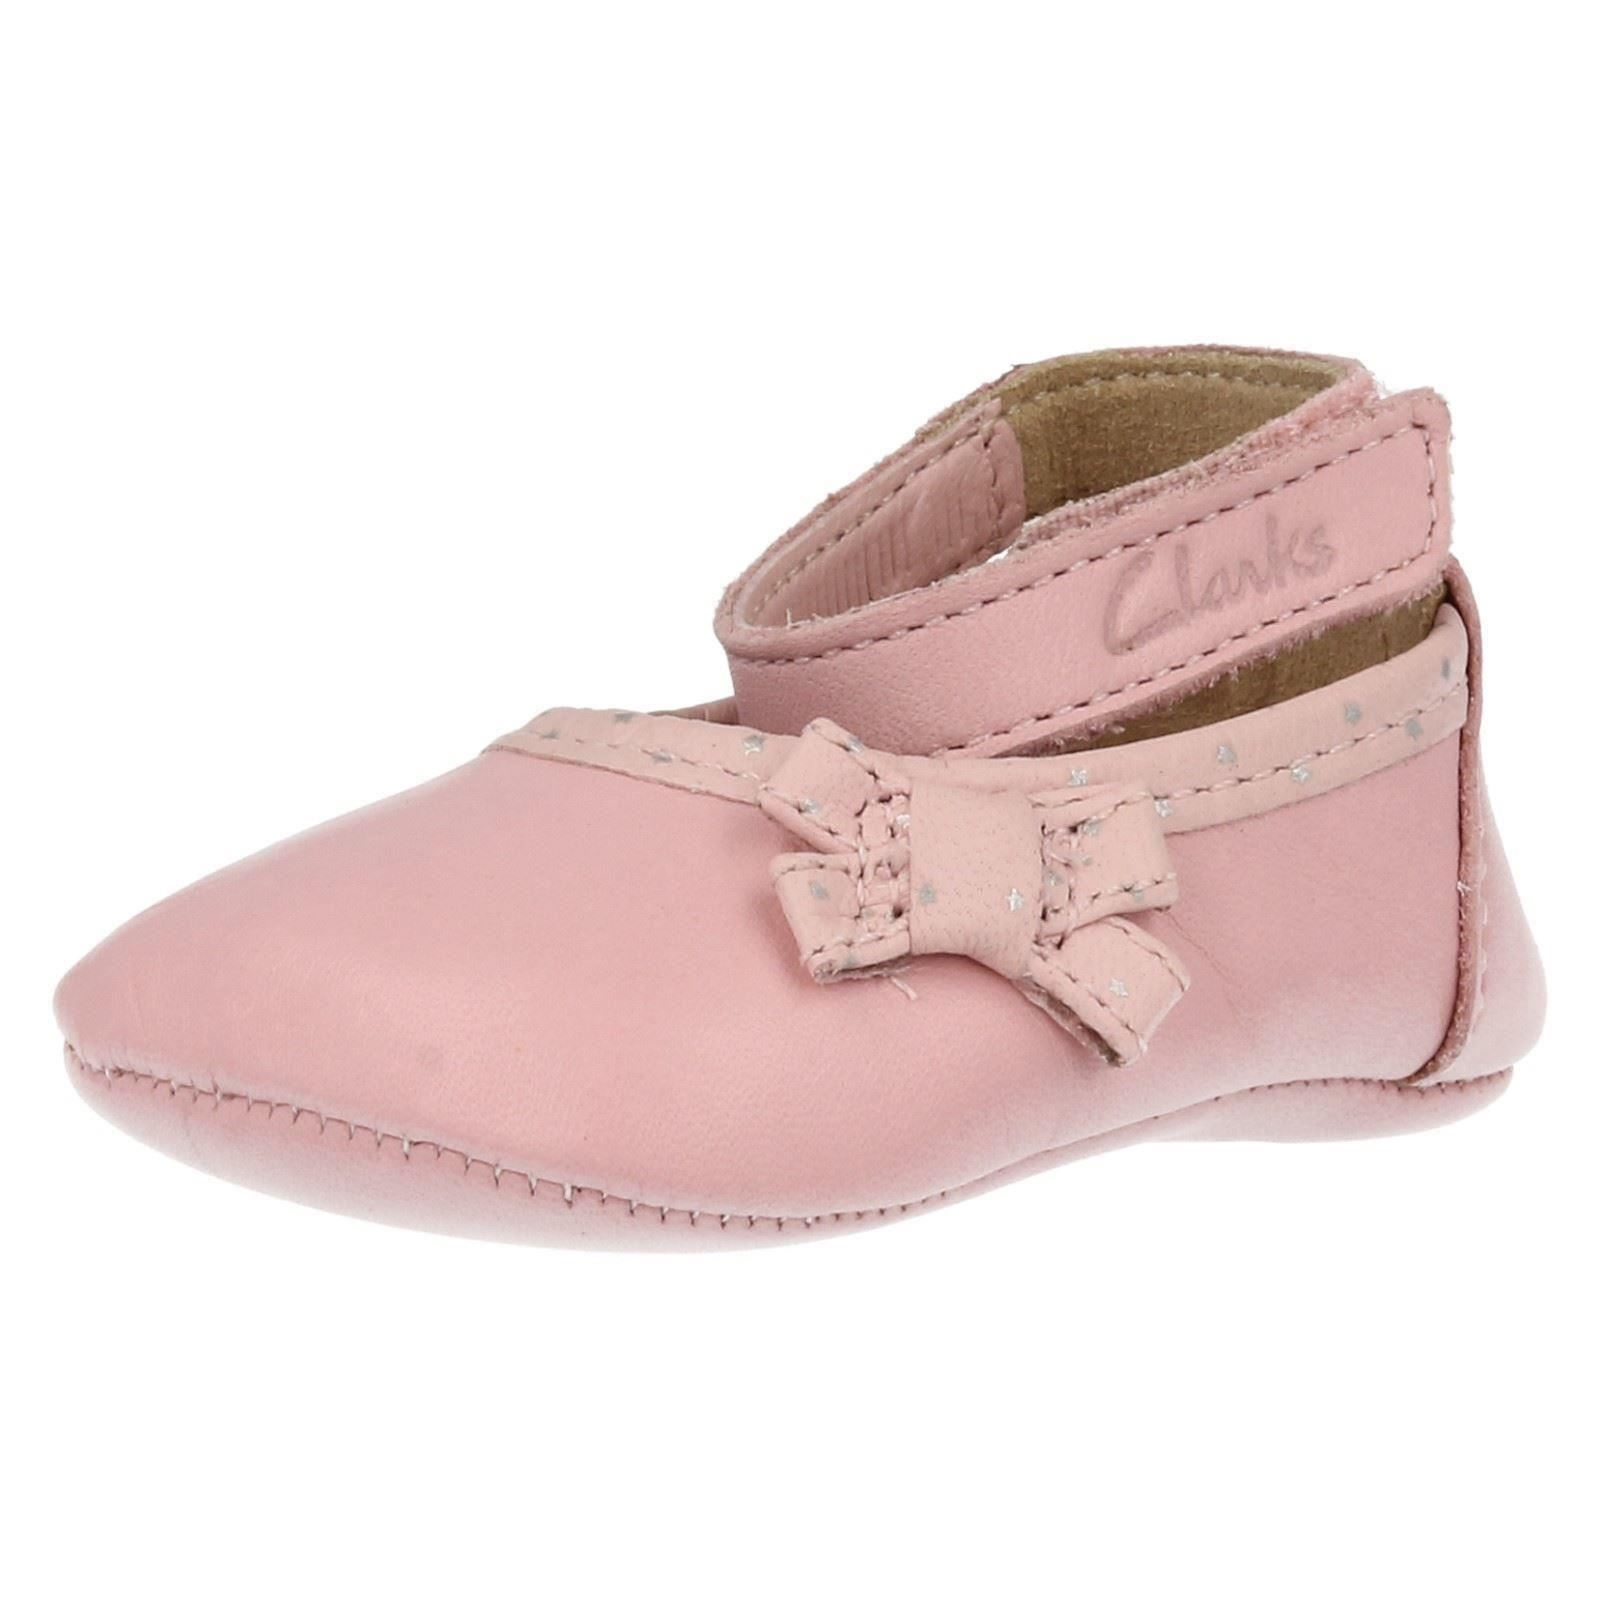 clarks childrens shoes uk